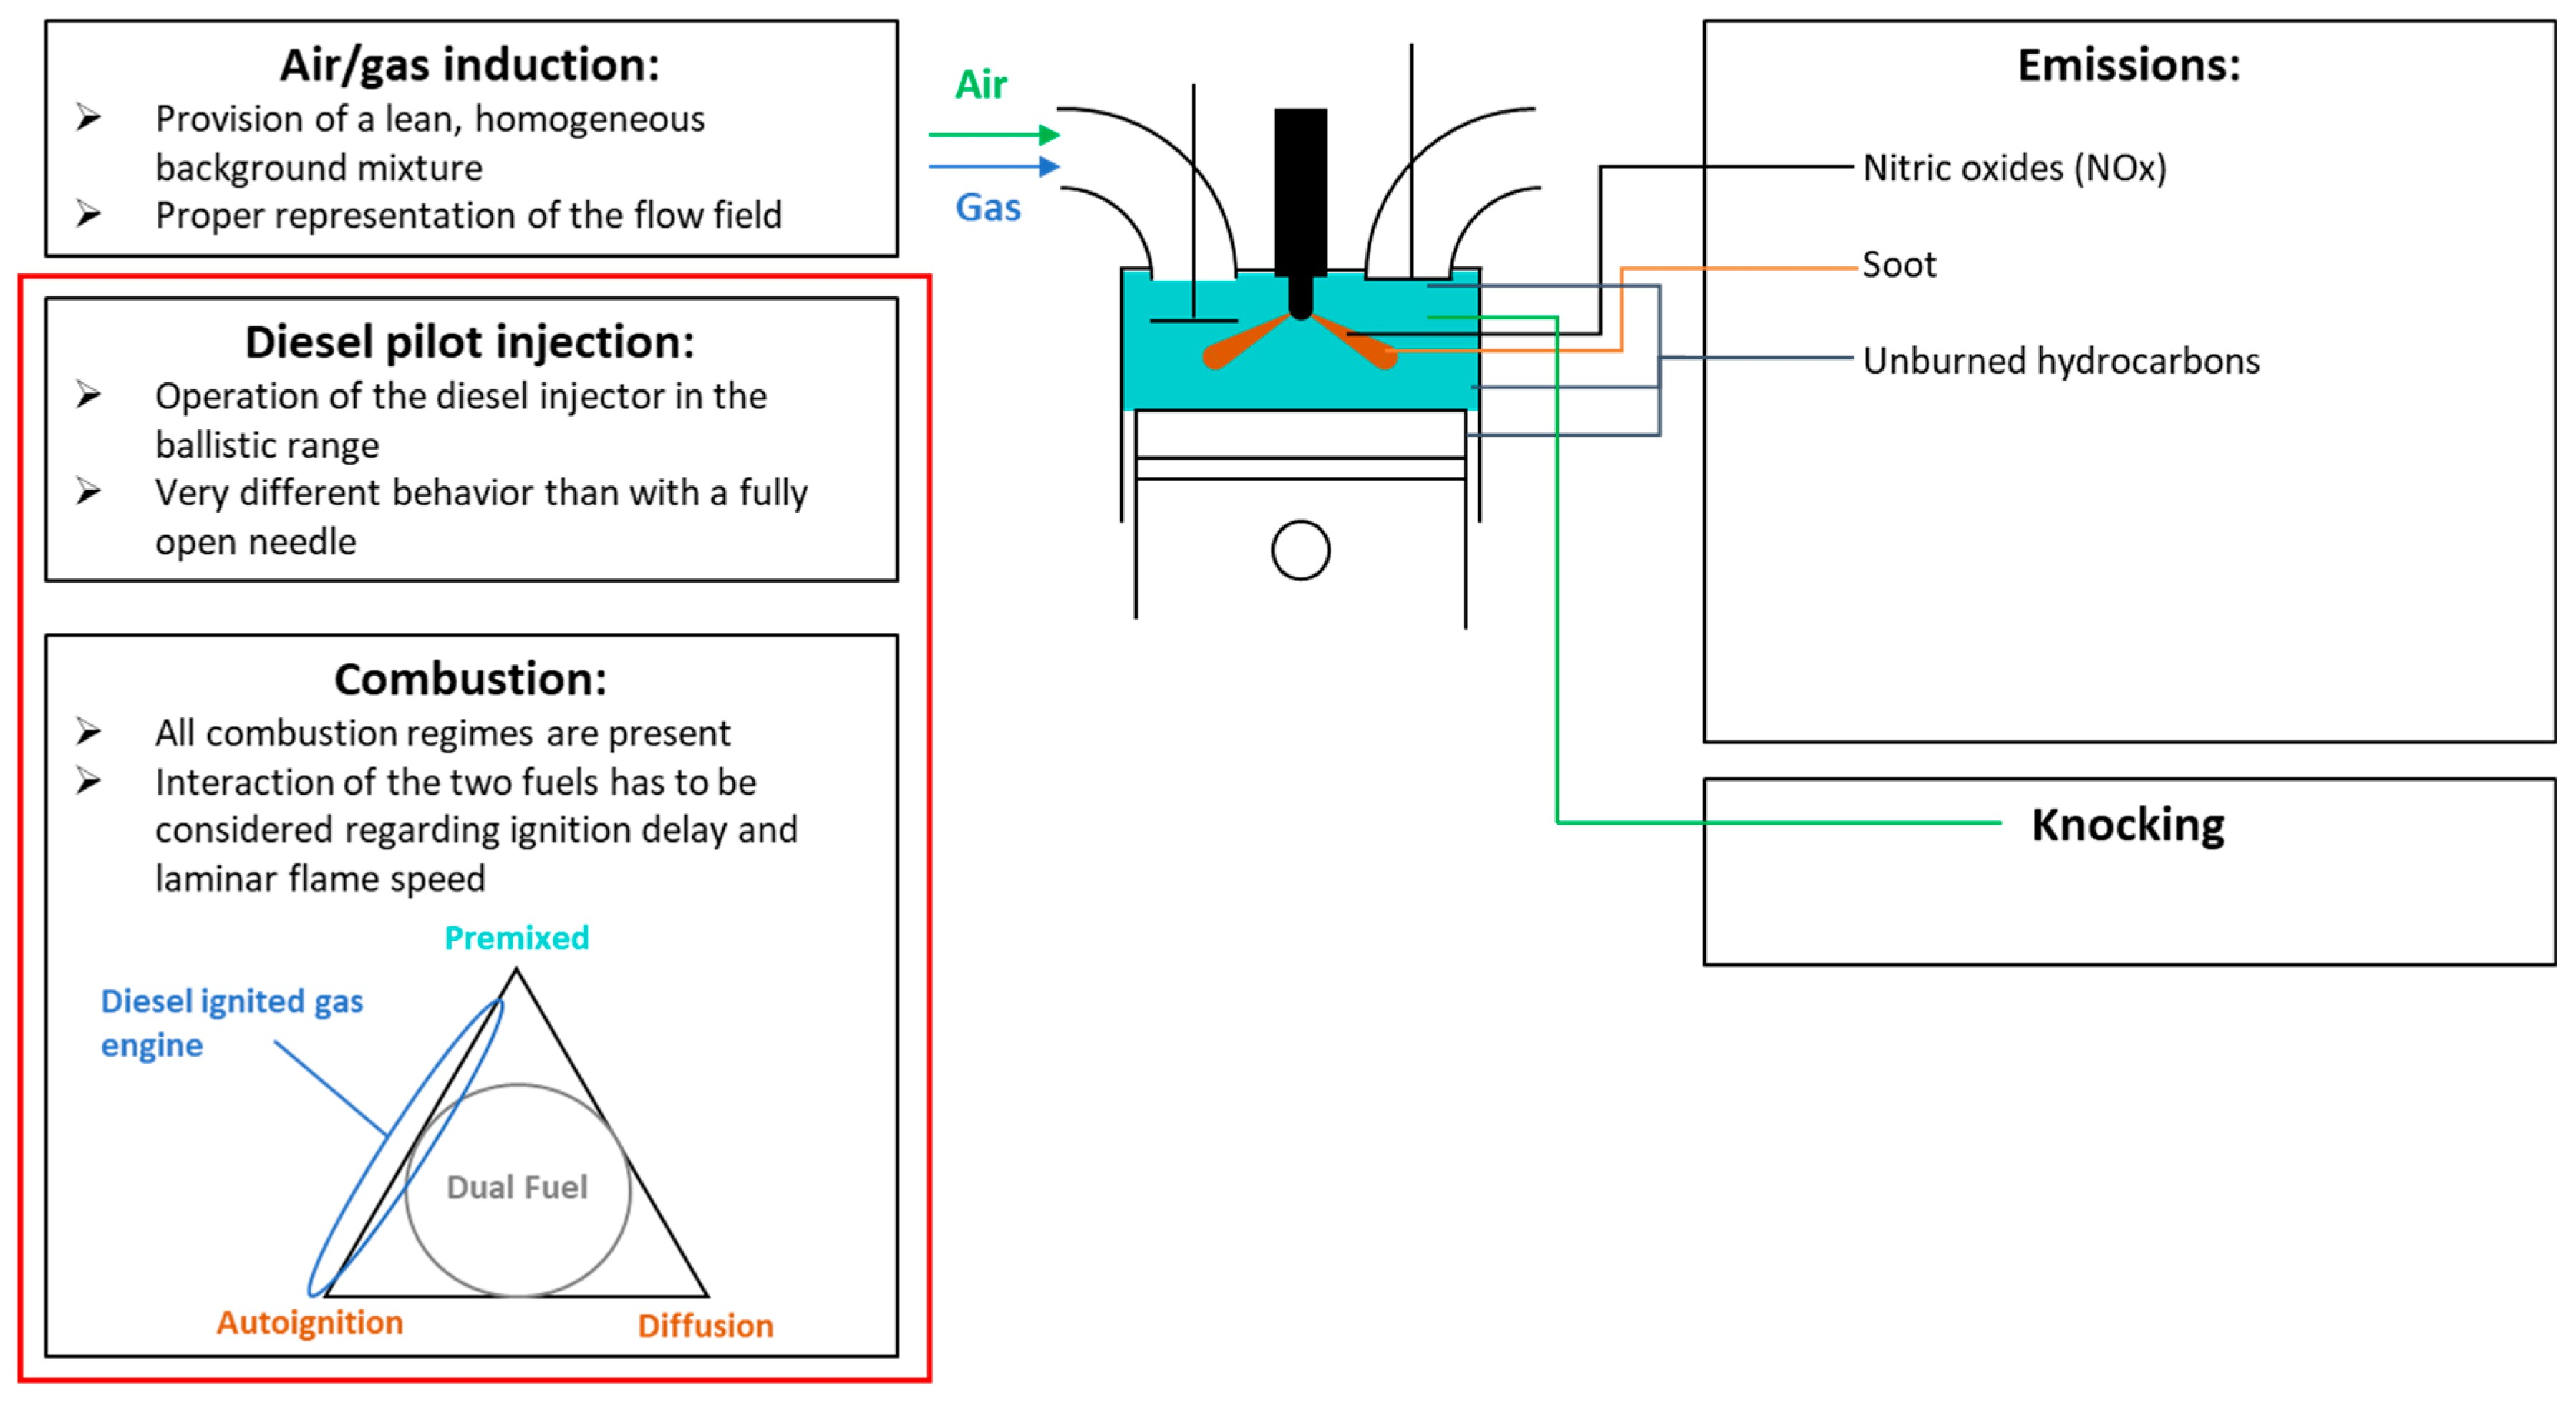 Diesel Engine Pv Diagram Energies Free Full Text Of Diesel Engine Pv Diagram